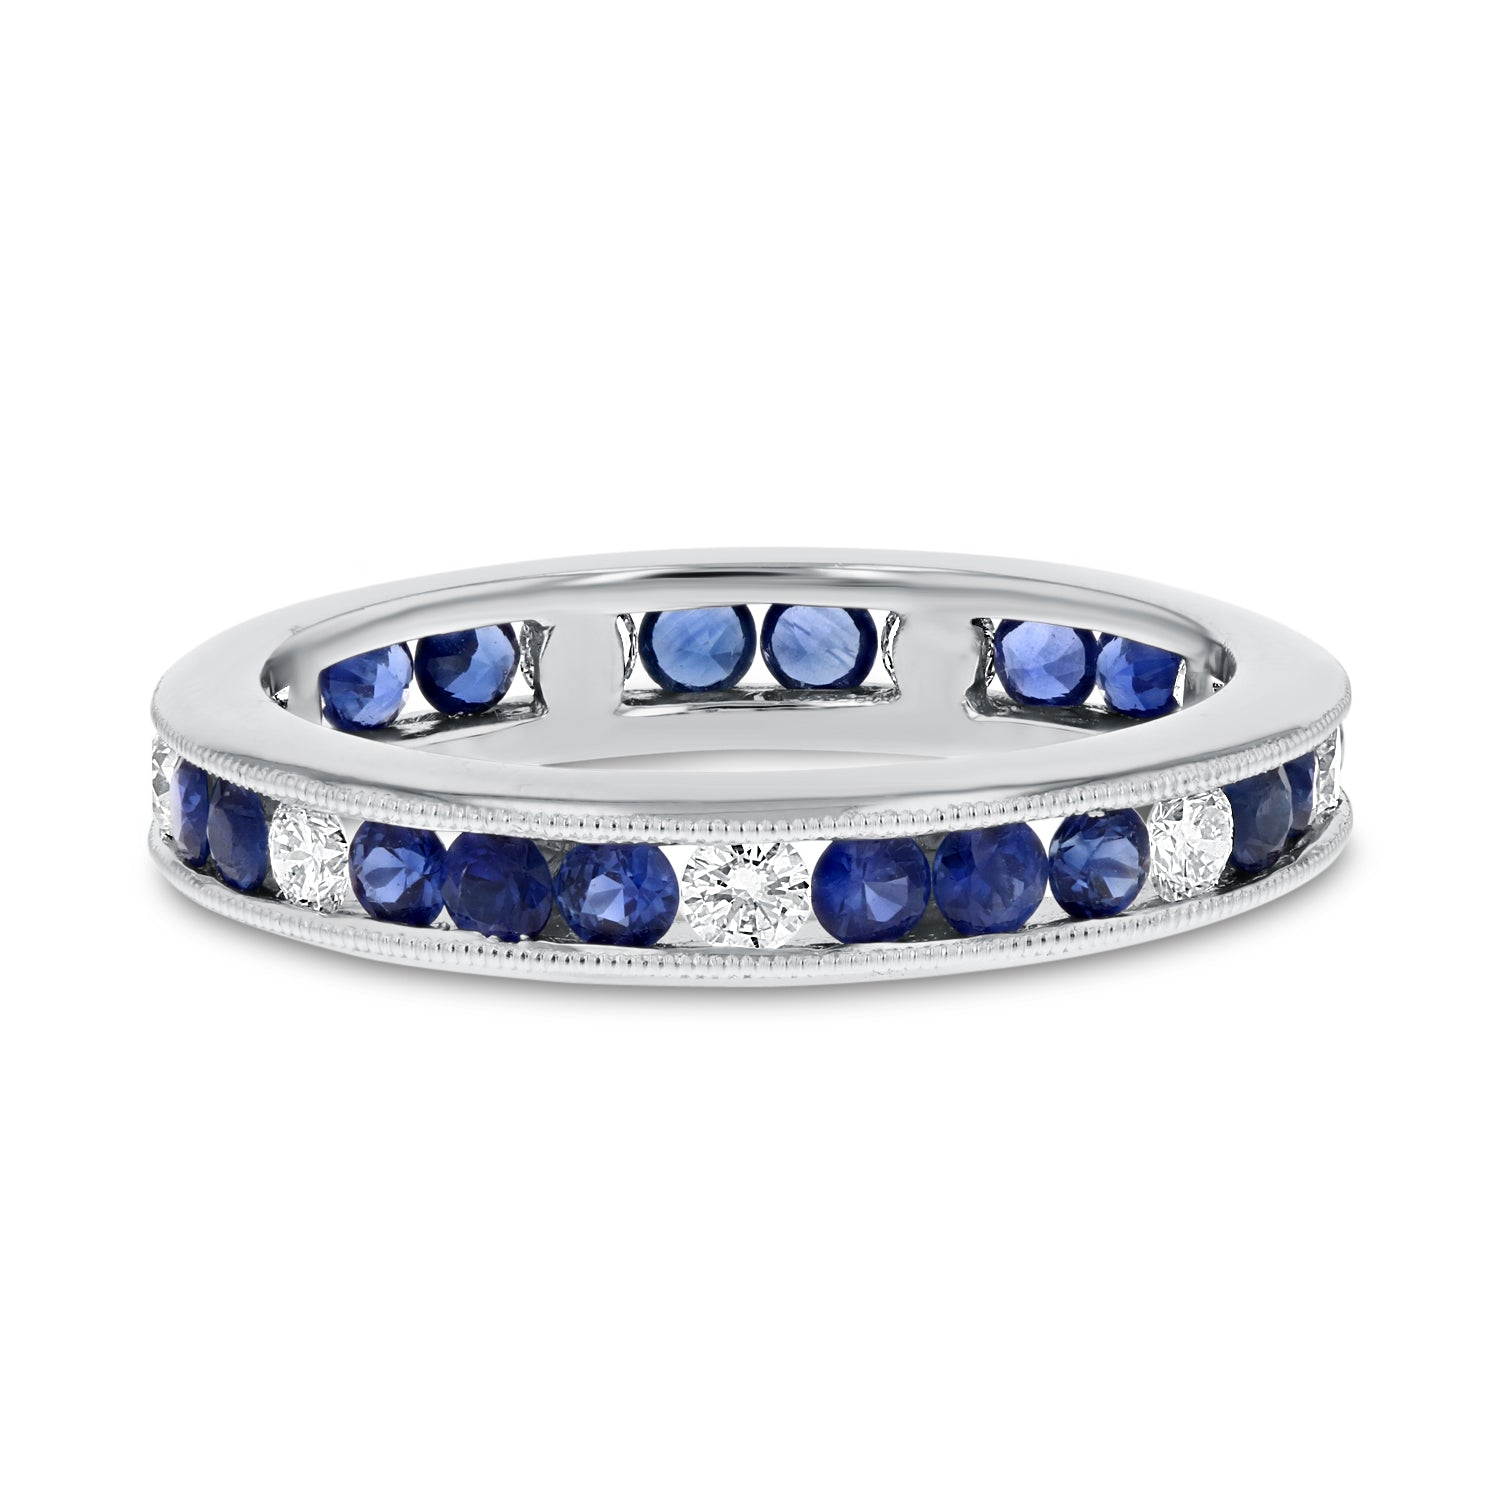 18K White Gold Diamond and Gemstone Ring, 1.36 Carats